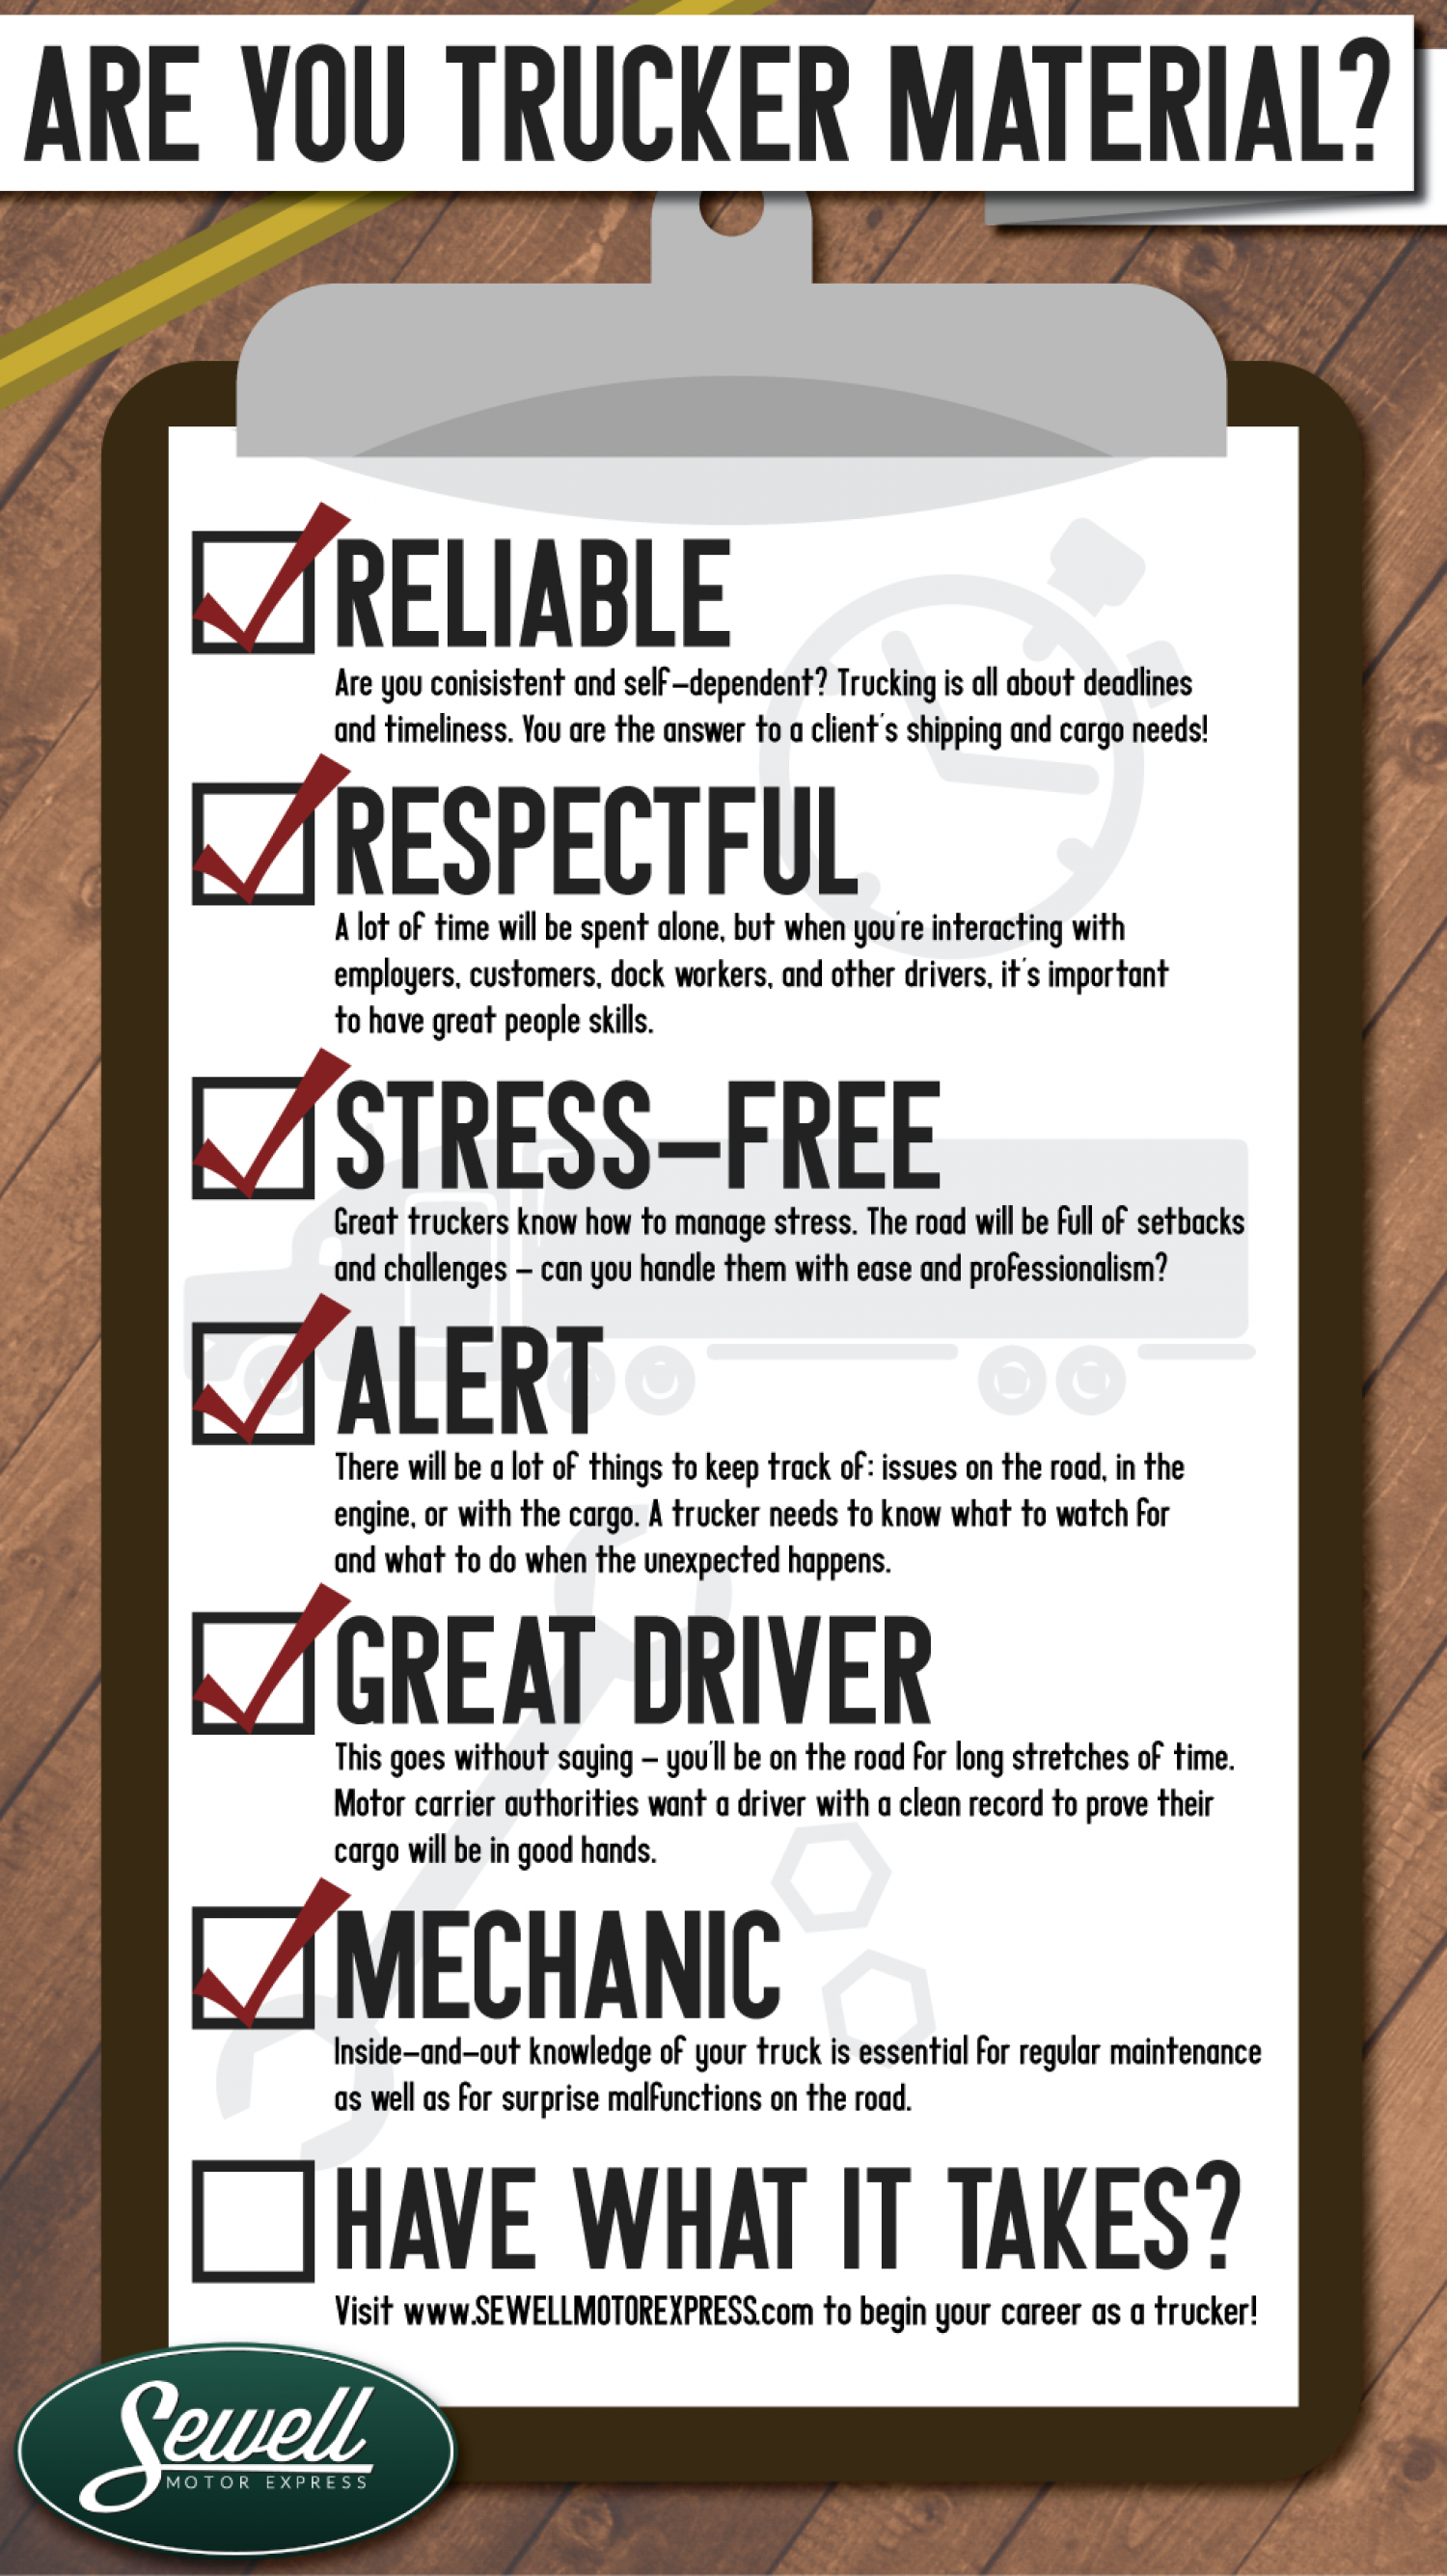 Are You Trucker Material? Infographic